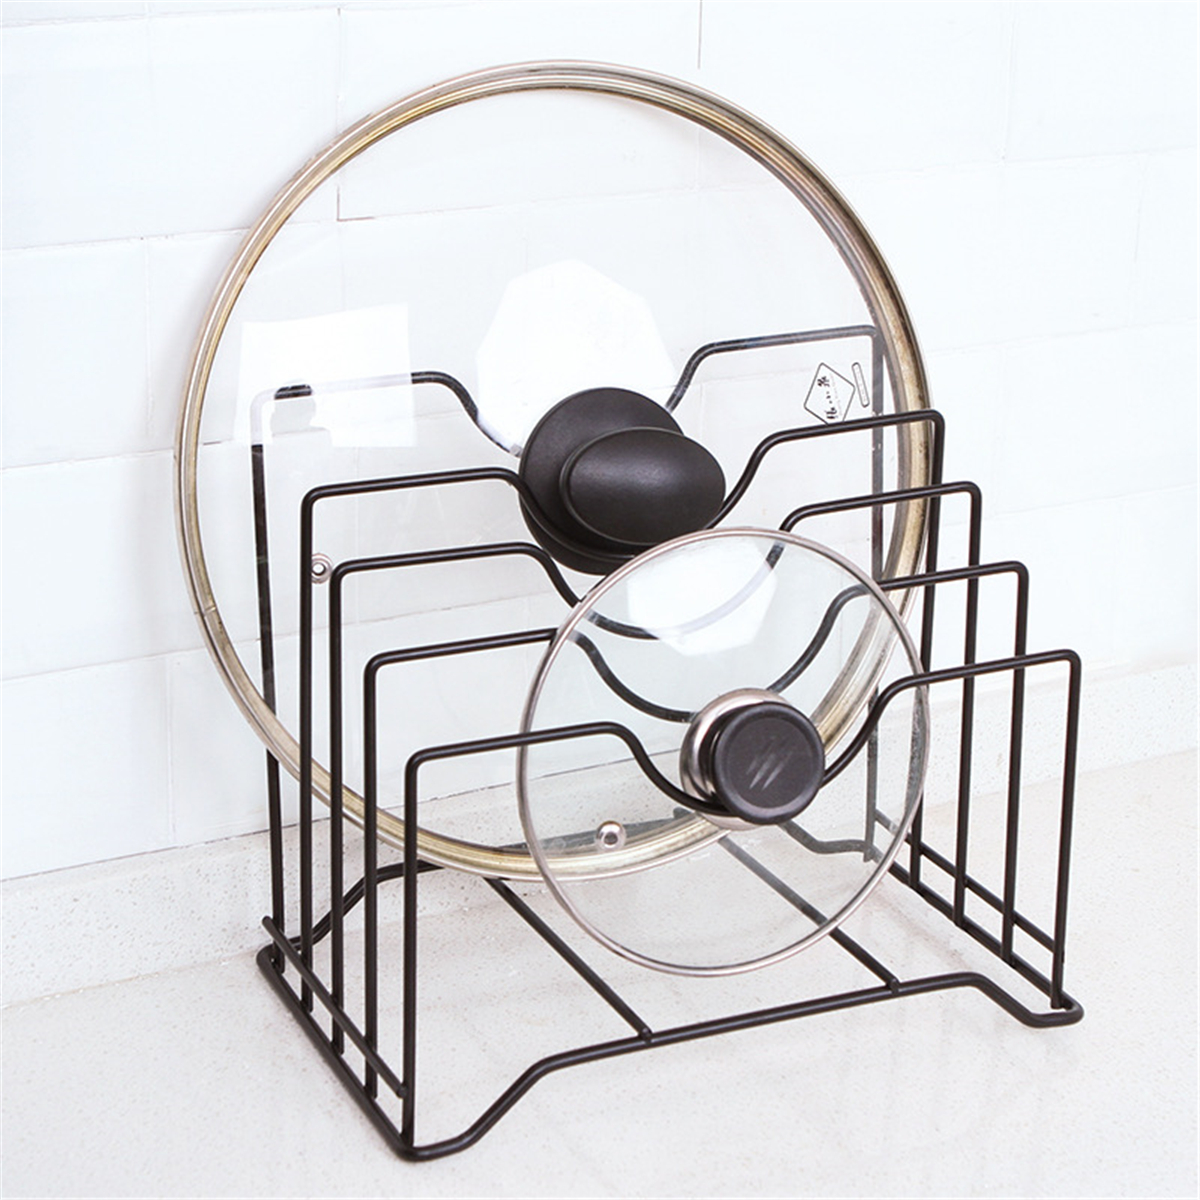 Kitchen Tools Storage Rack Holder Metal Knife Holder Cutting Chopping Board Stand Pot Lid Pan Cover Organizer Accessories Black